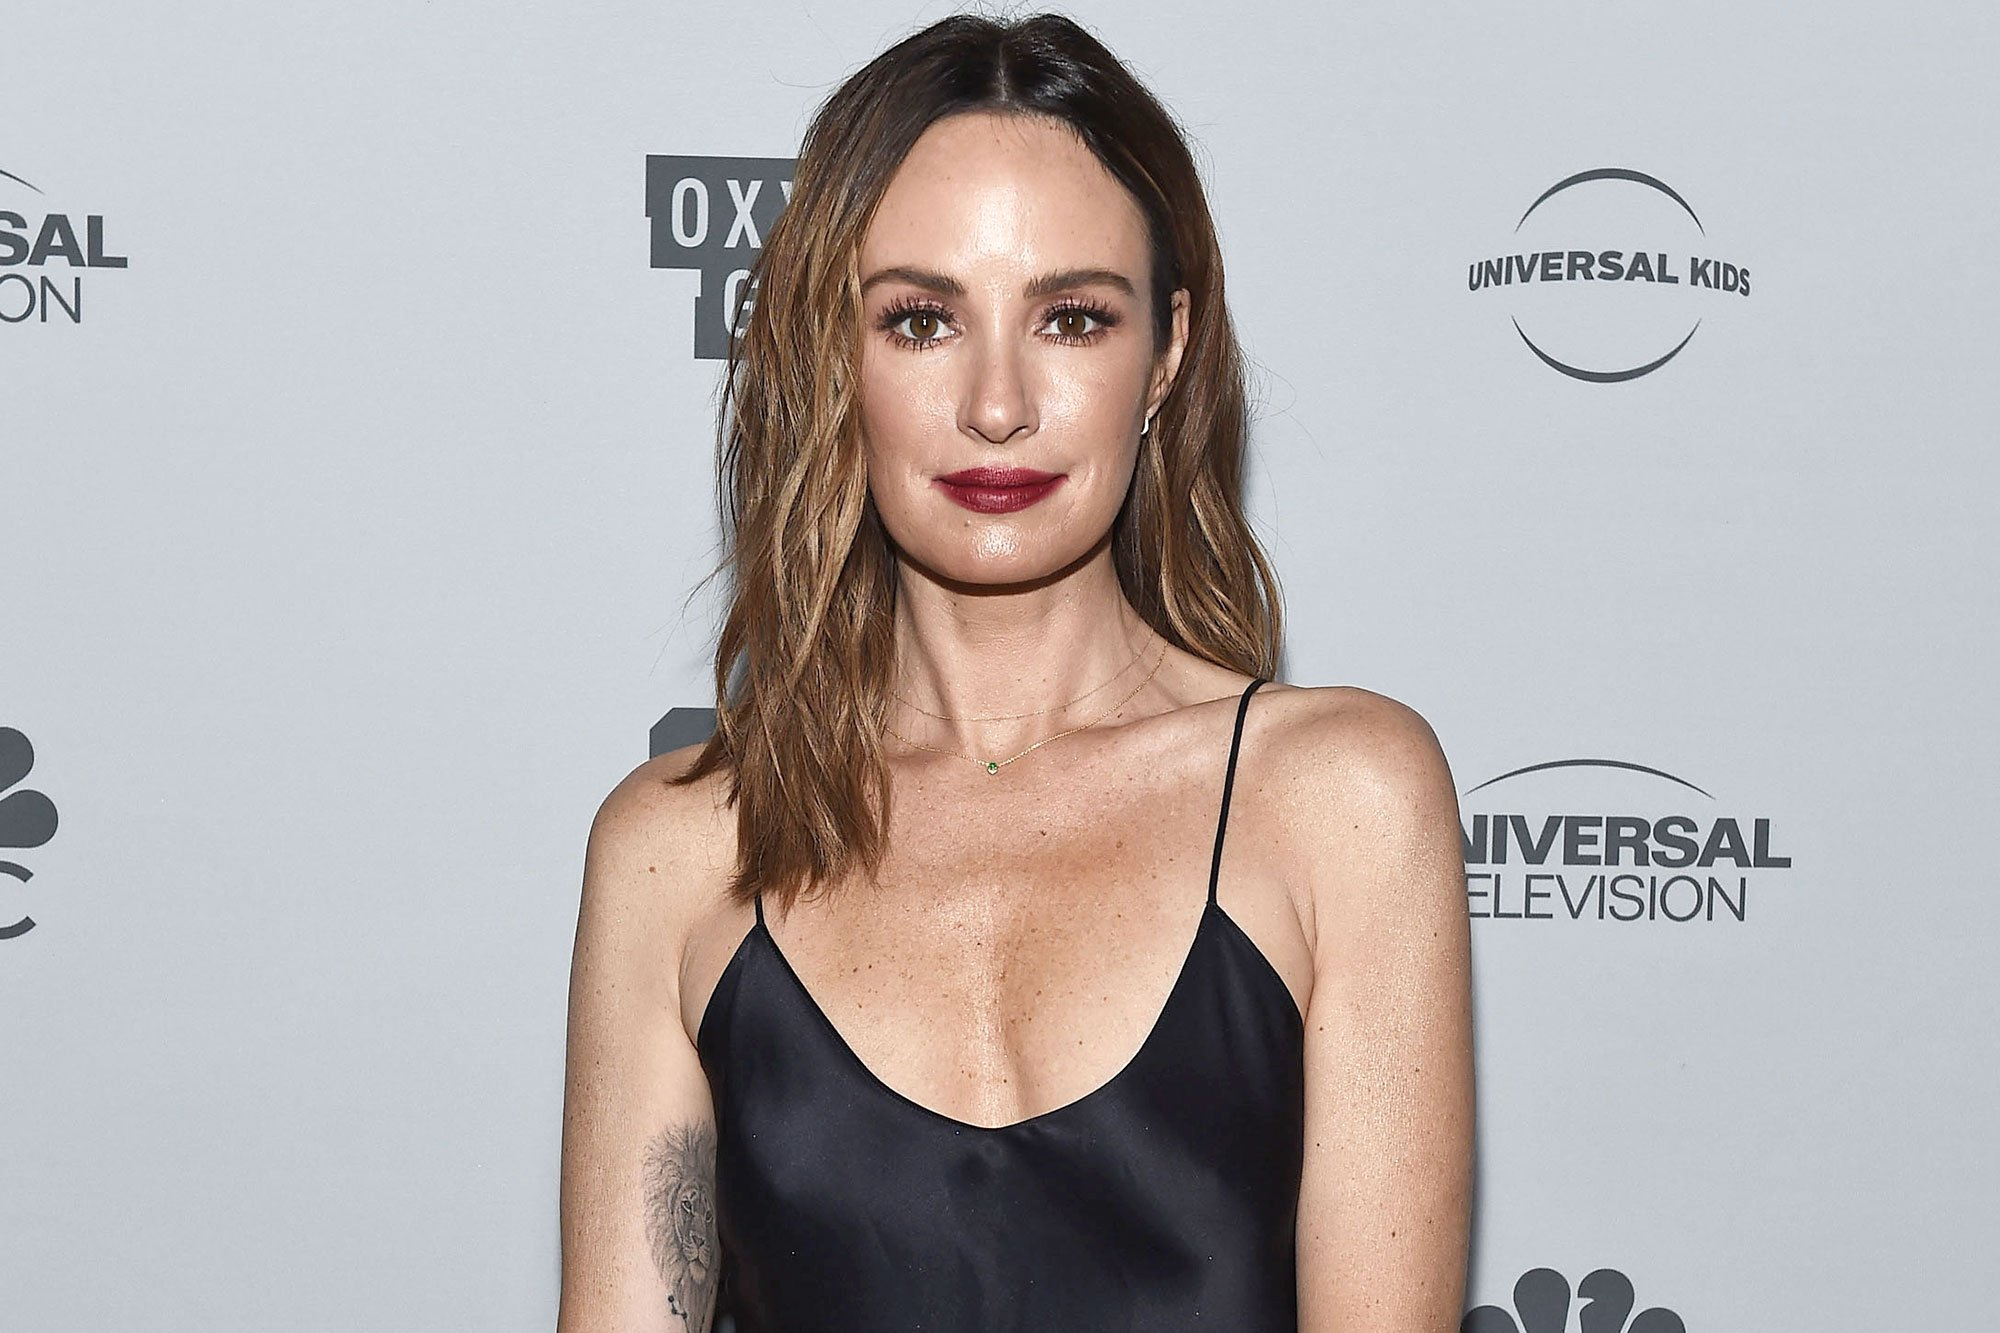 E! producer says she was fired for interview critical of network's treatment of Catt Sadler